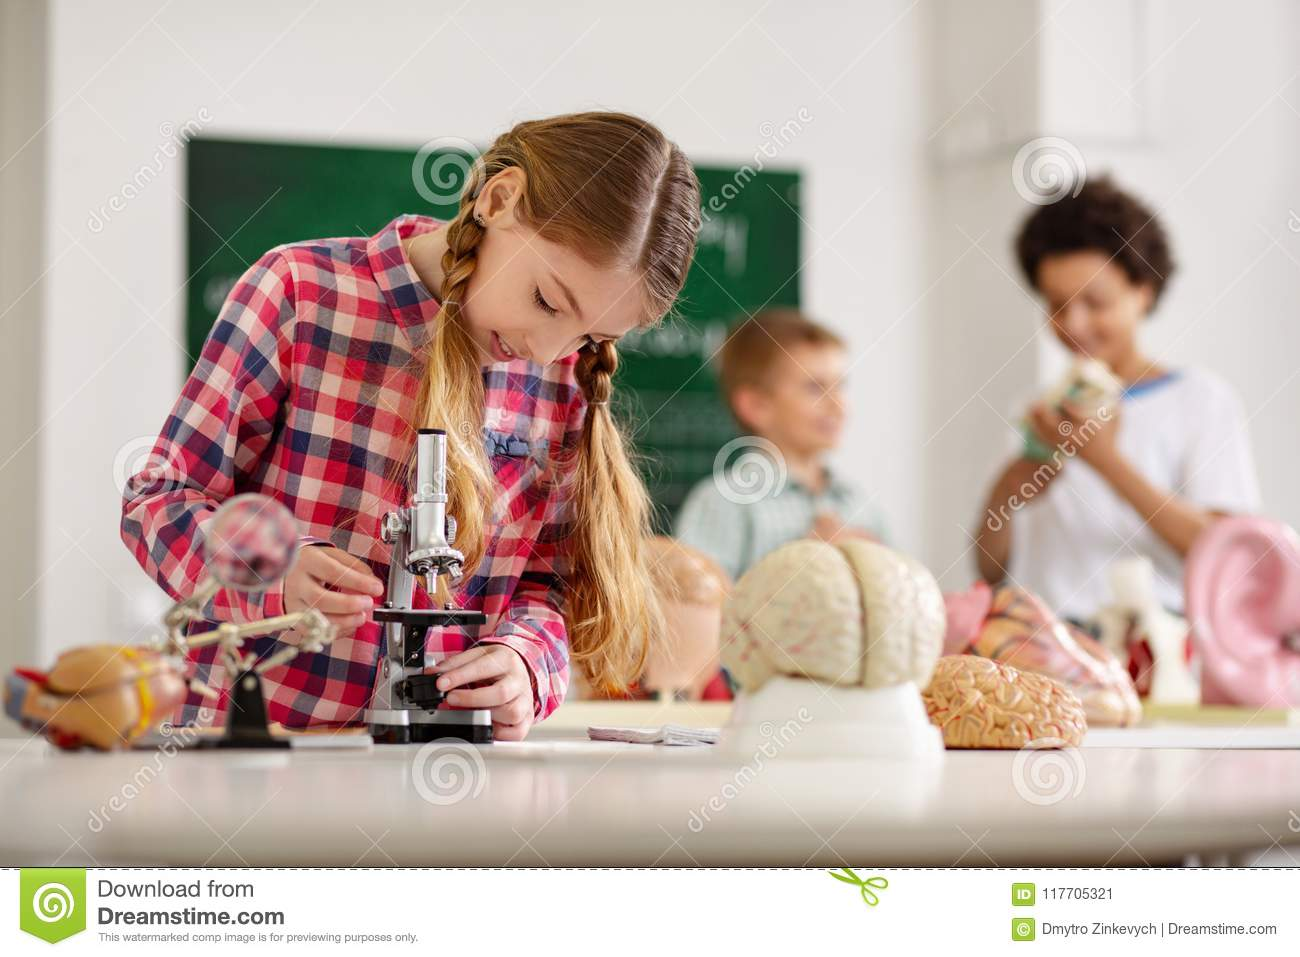 Smart Curious Girl Looking Into The Microscope Stock Image - Image ...